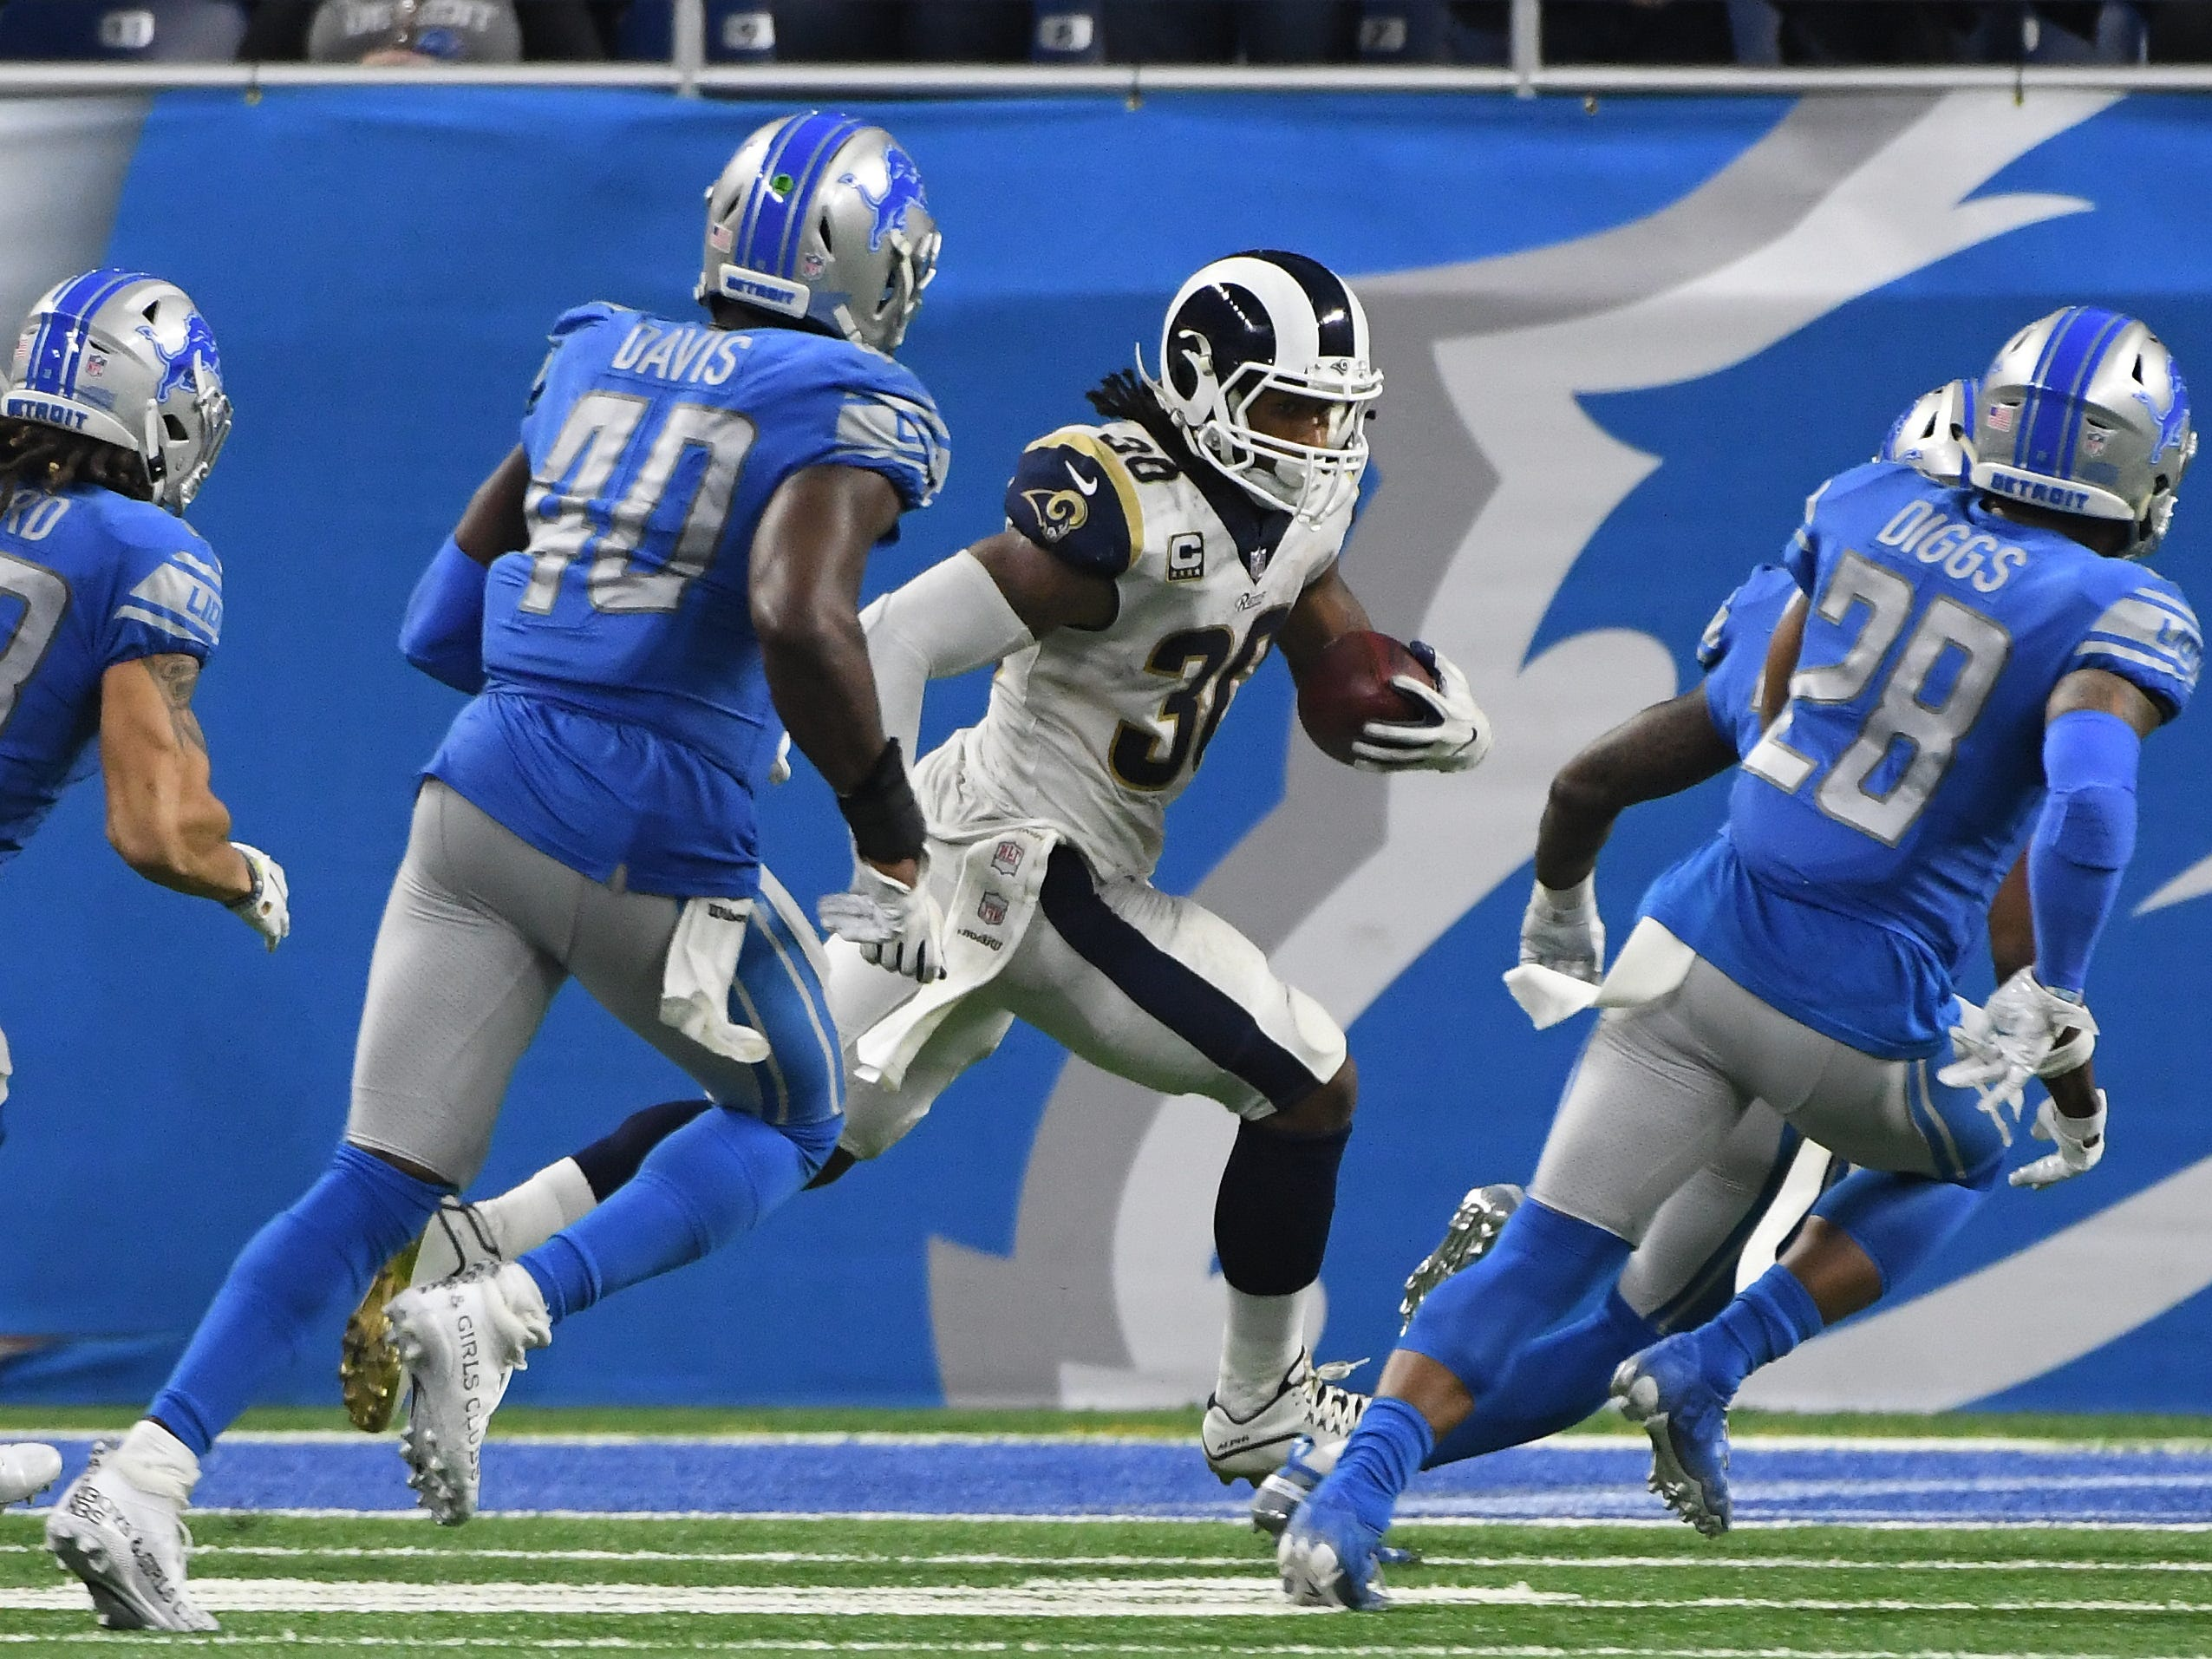 Instead of running into the end zone, Rams running back Todd Gurley II runs along the goal line, burning off time on the clock, late in the fourth quarter.  Gurley and the Rams scored on a following play.